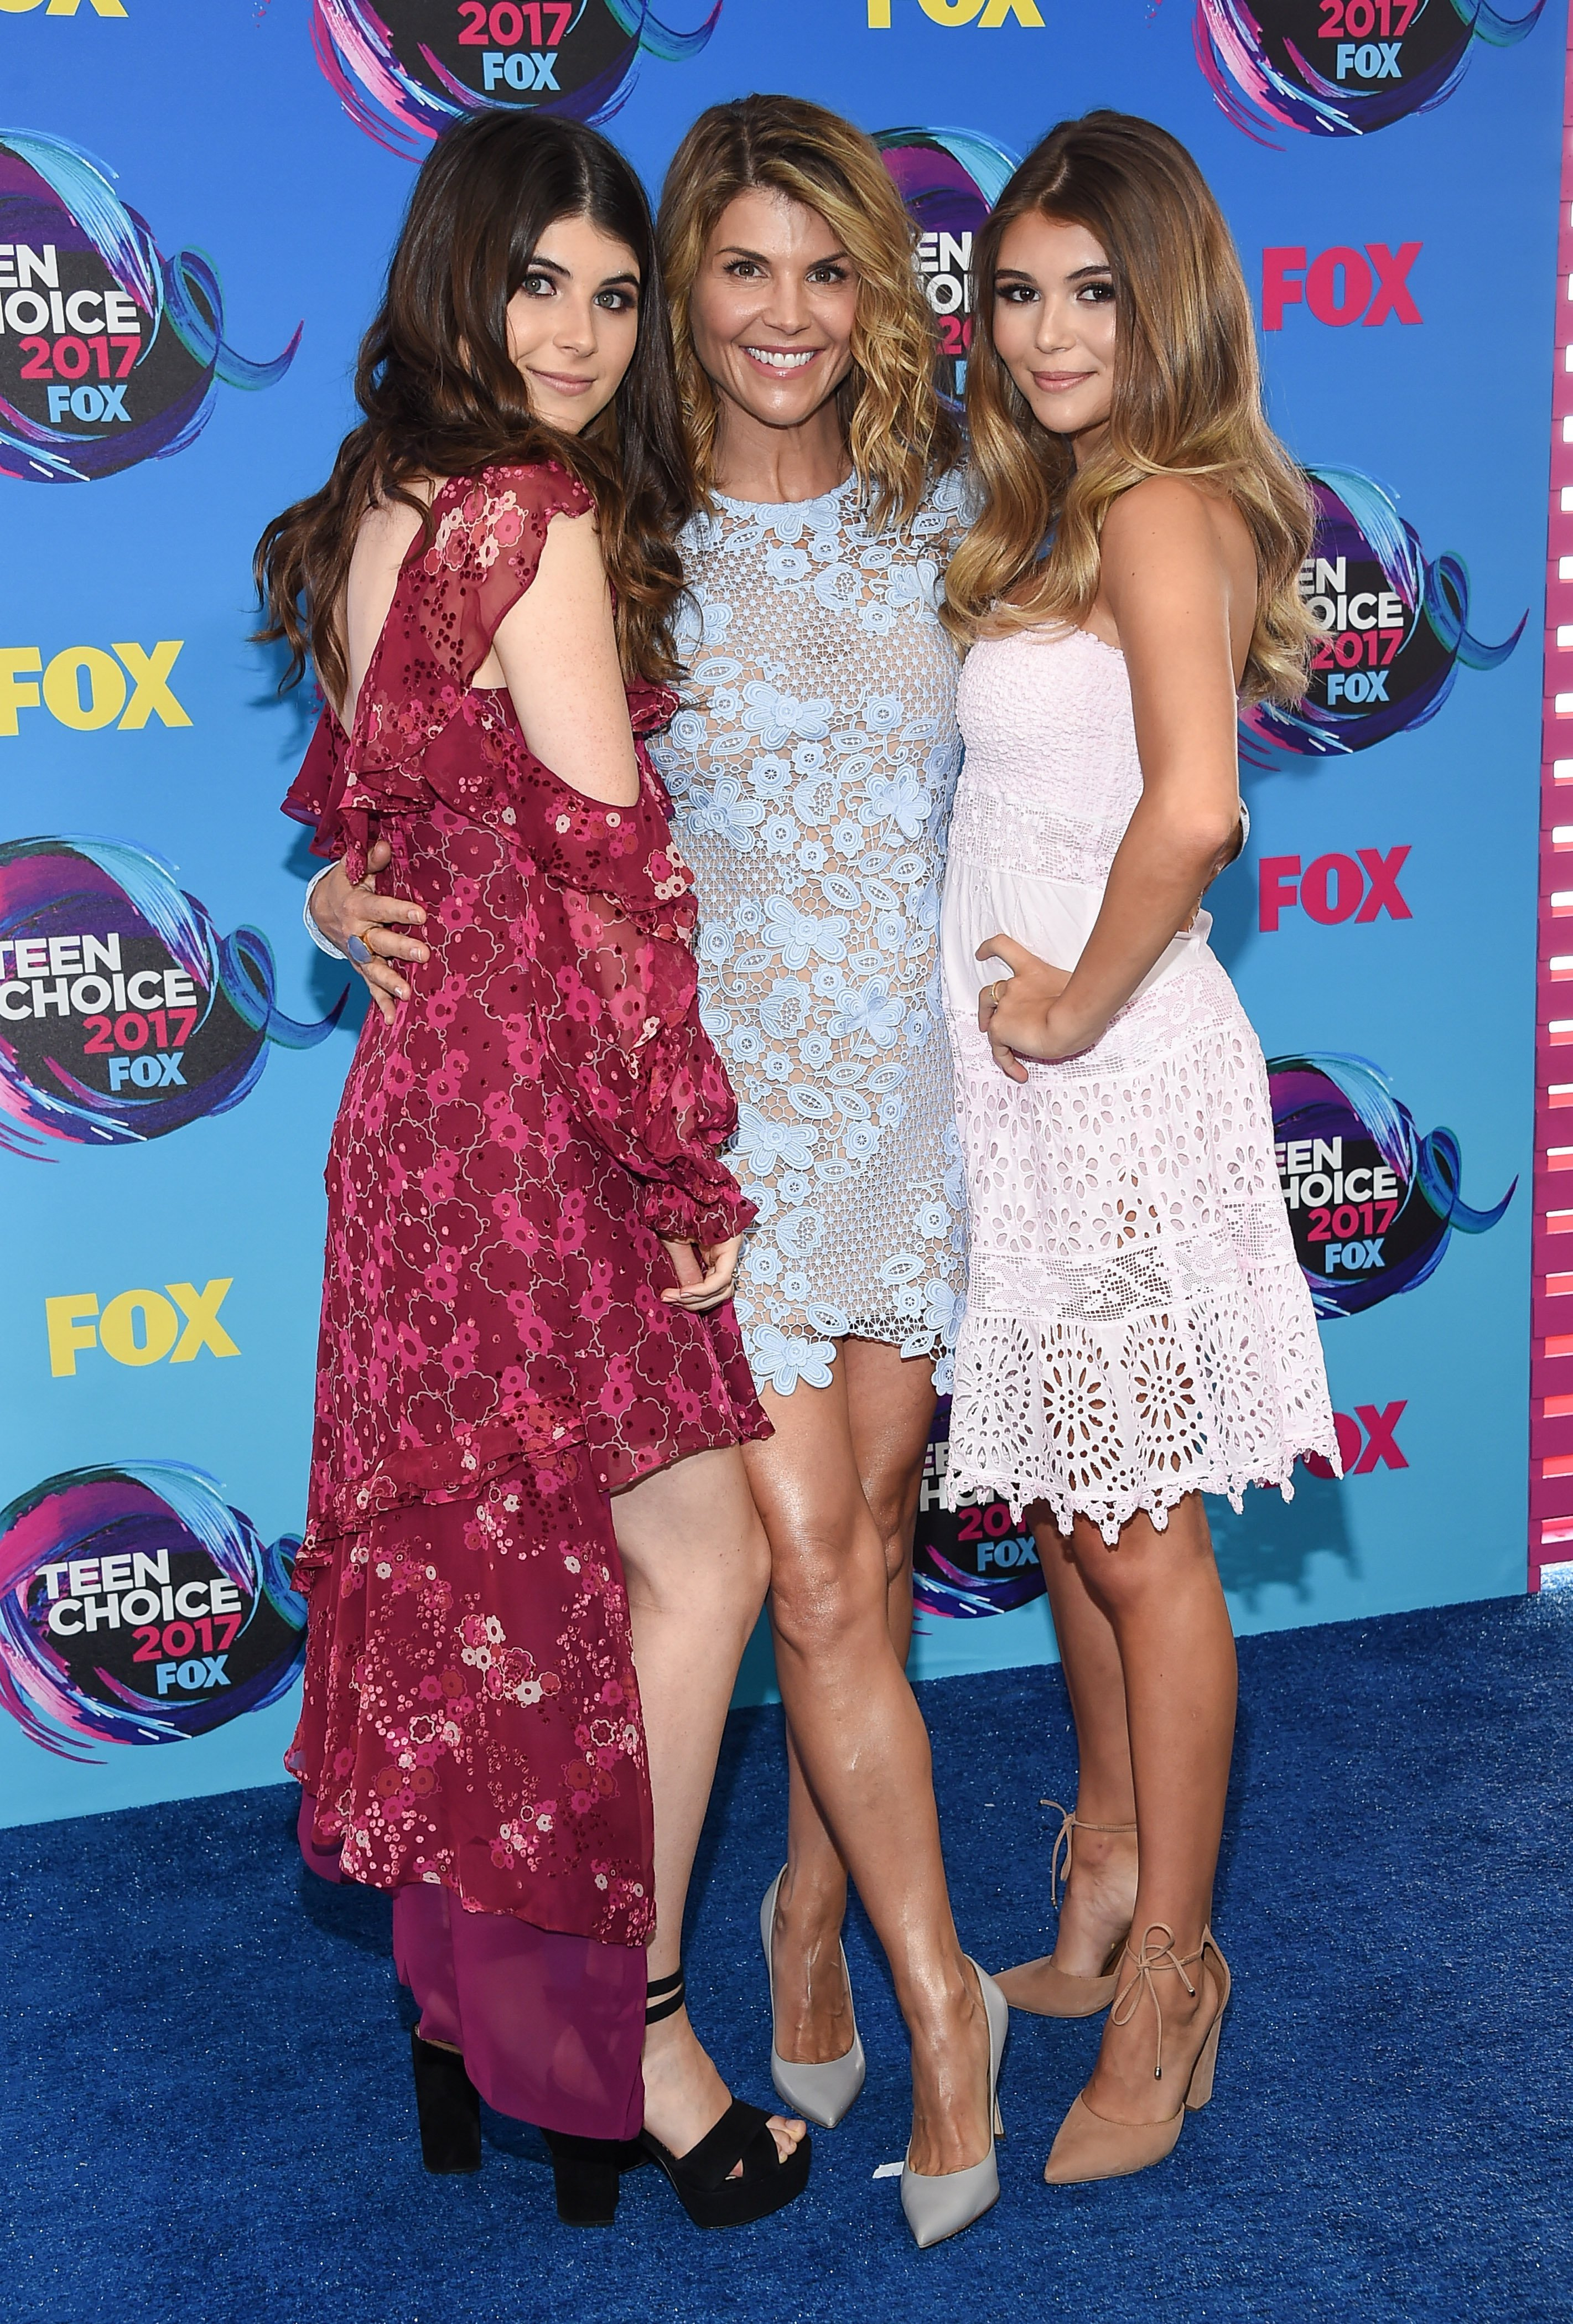 Lori Loughlin, Isabella Rose Giannulli, Olivia Jade Giannulli arrives for the Teen Choice Awards 2017 on August 13, 2017, in Los Angeles, CA. | Source: Shutterstock.